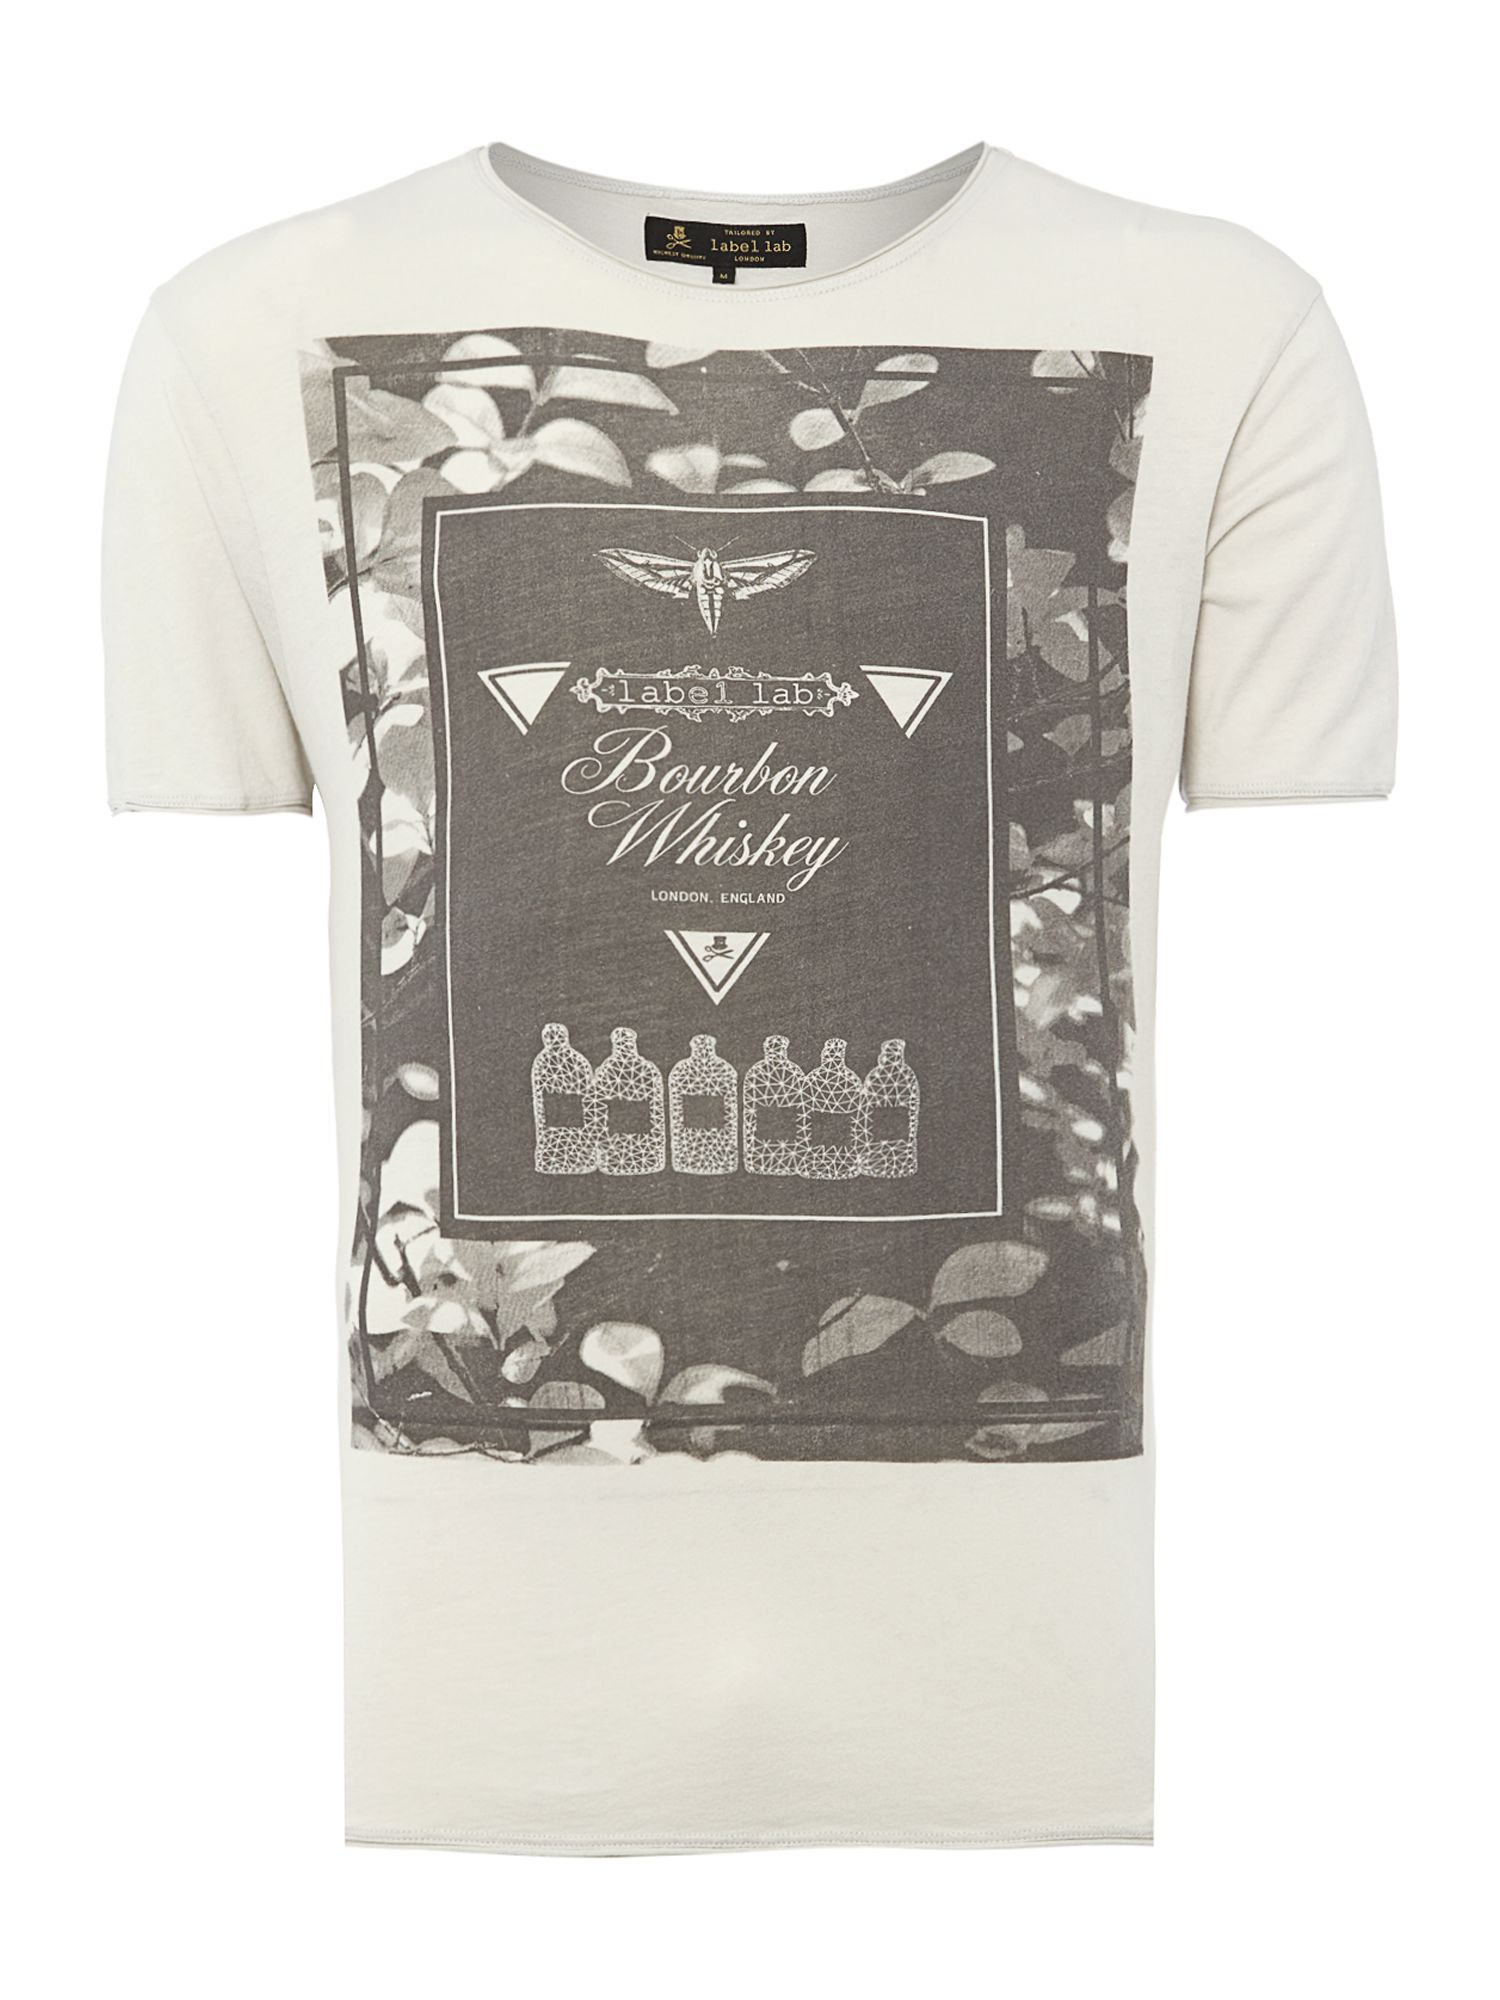 Bourbon graphic t-shirt